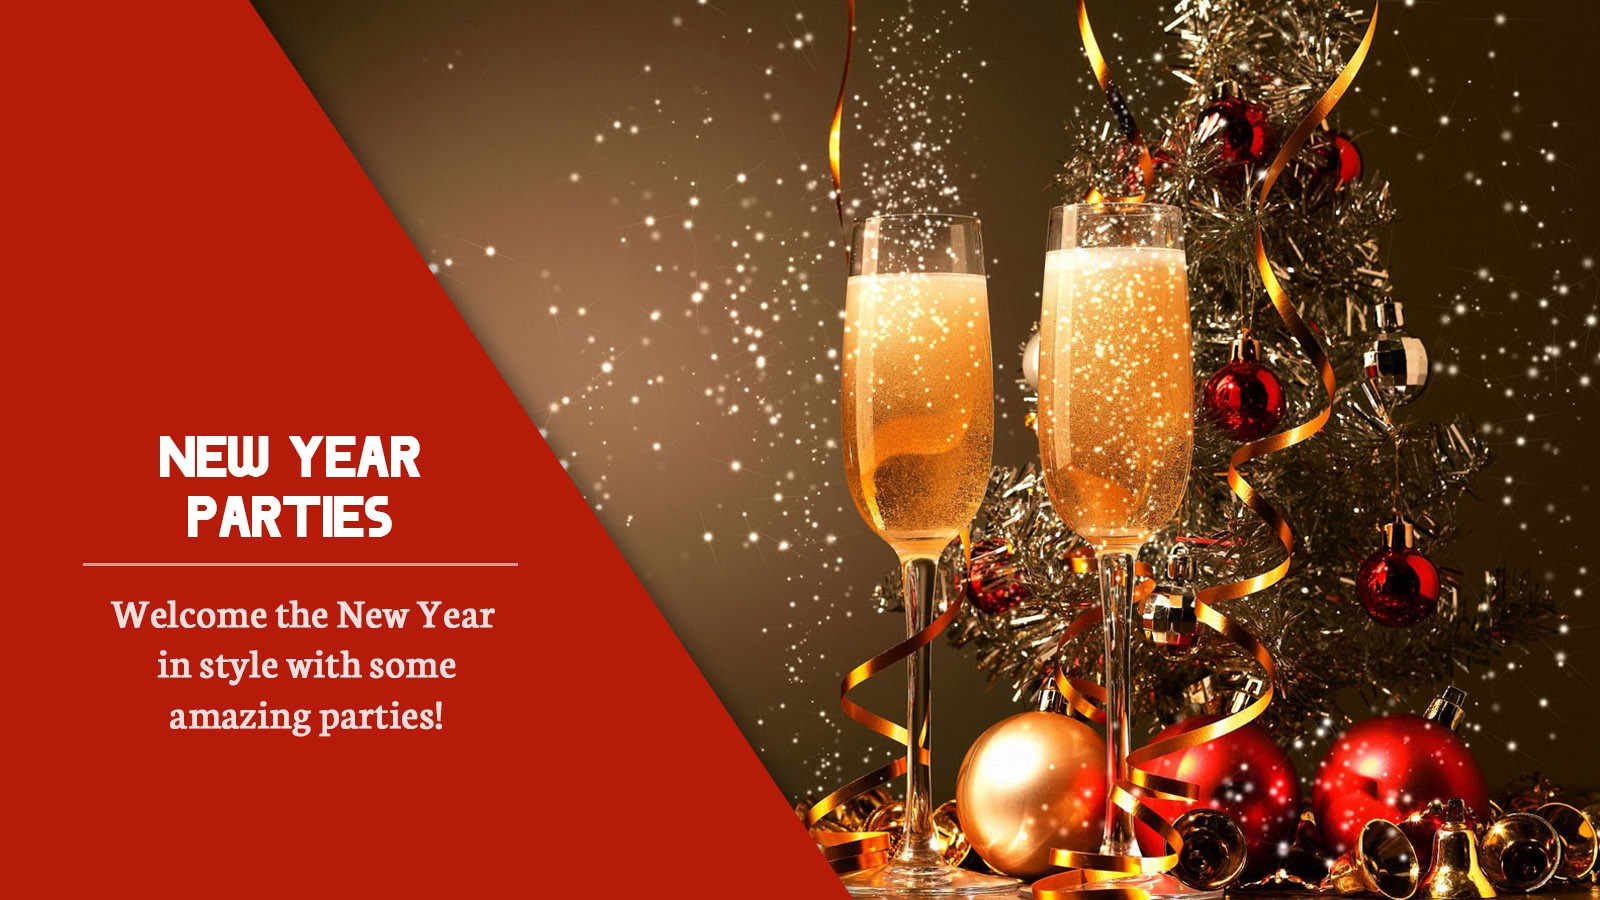 new year parties in delhi jaipur bangalore party like never before and welcome the new year in style